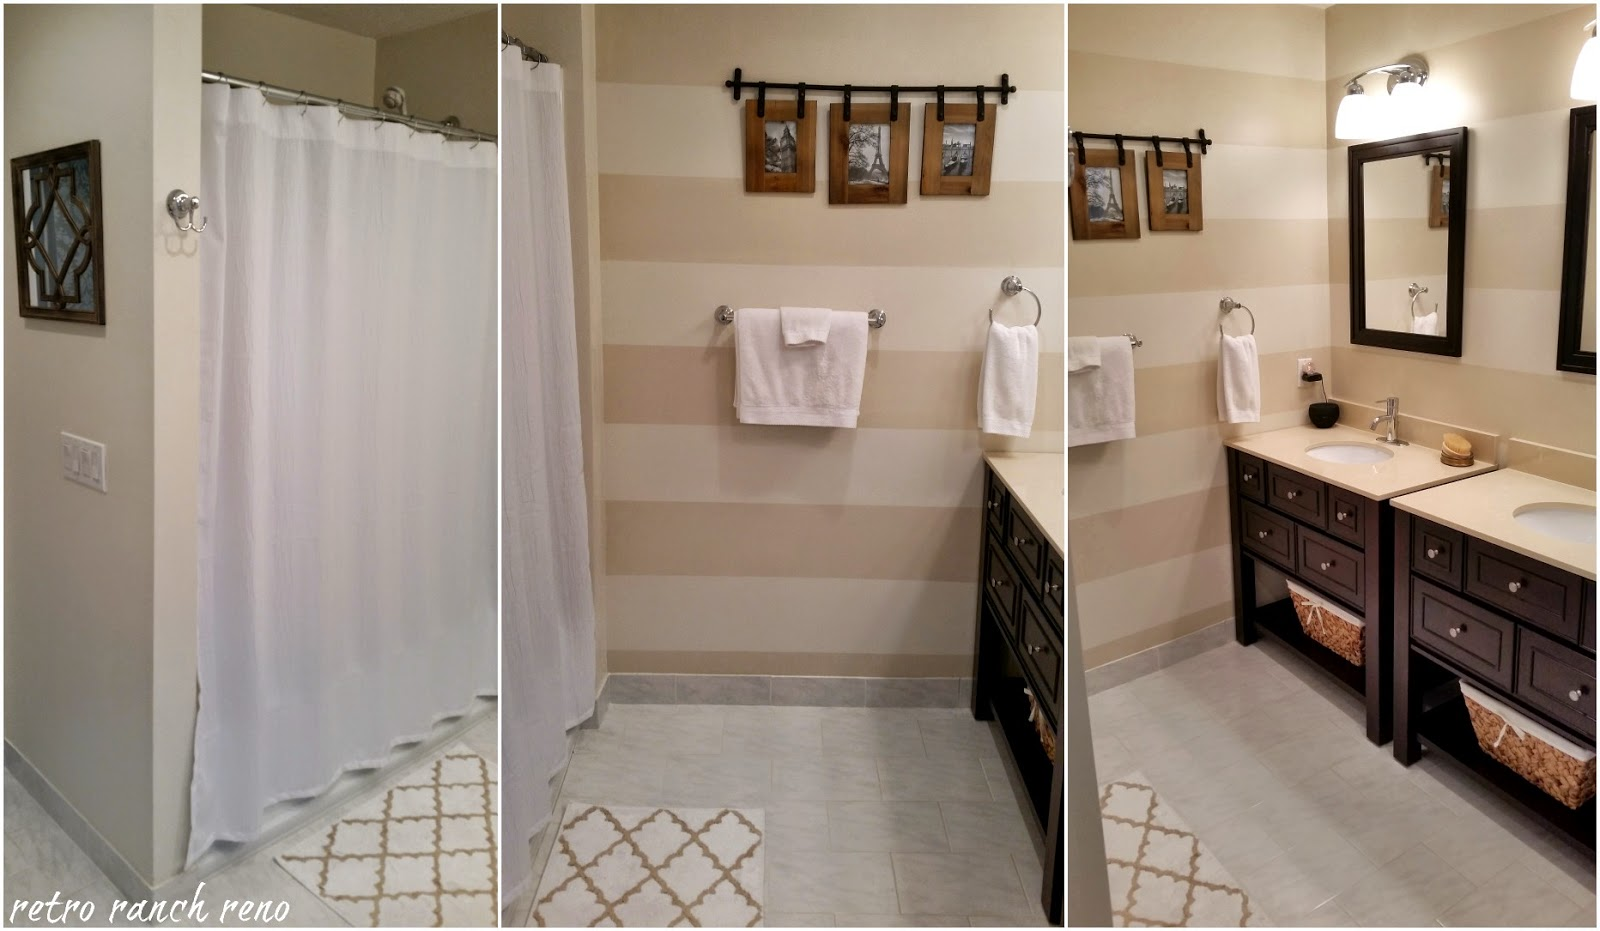 1950 bathroom remodel - I Love How Spacious This Bathroom Is Now